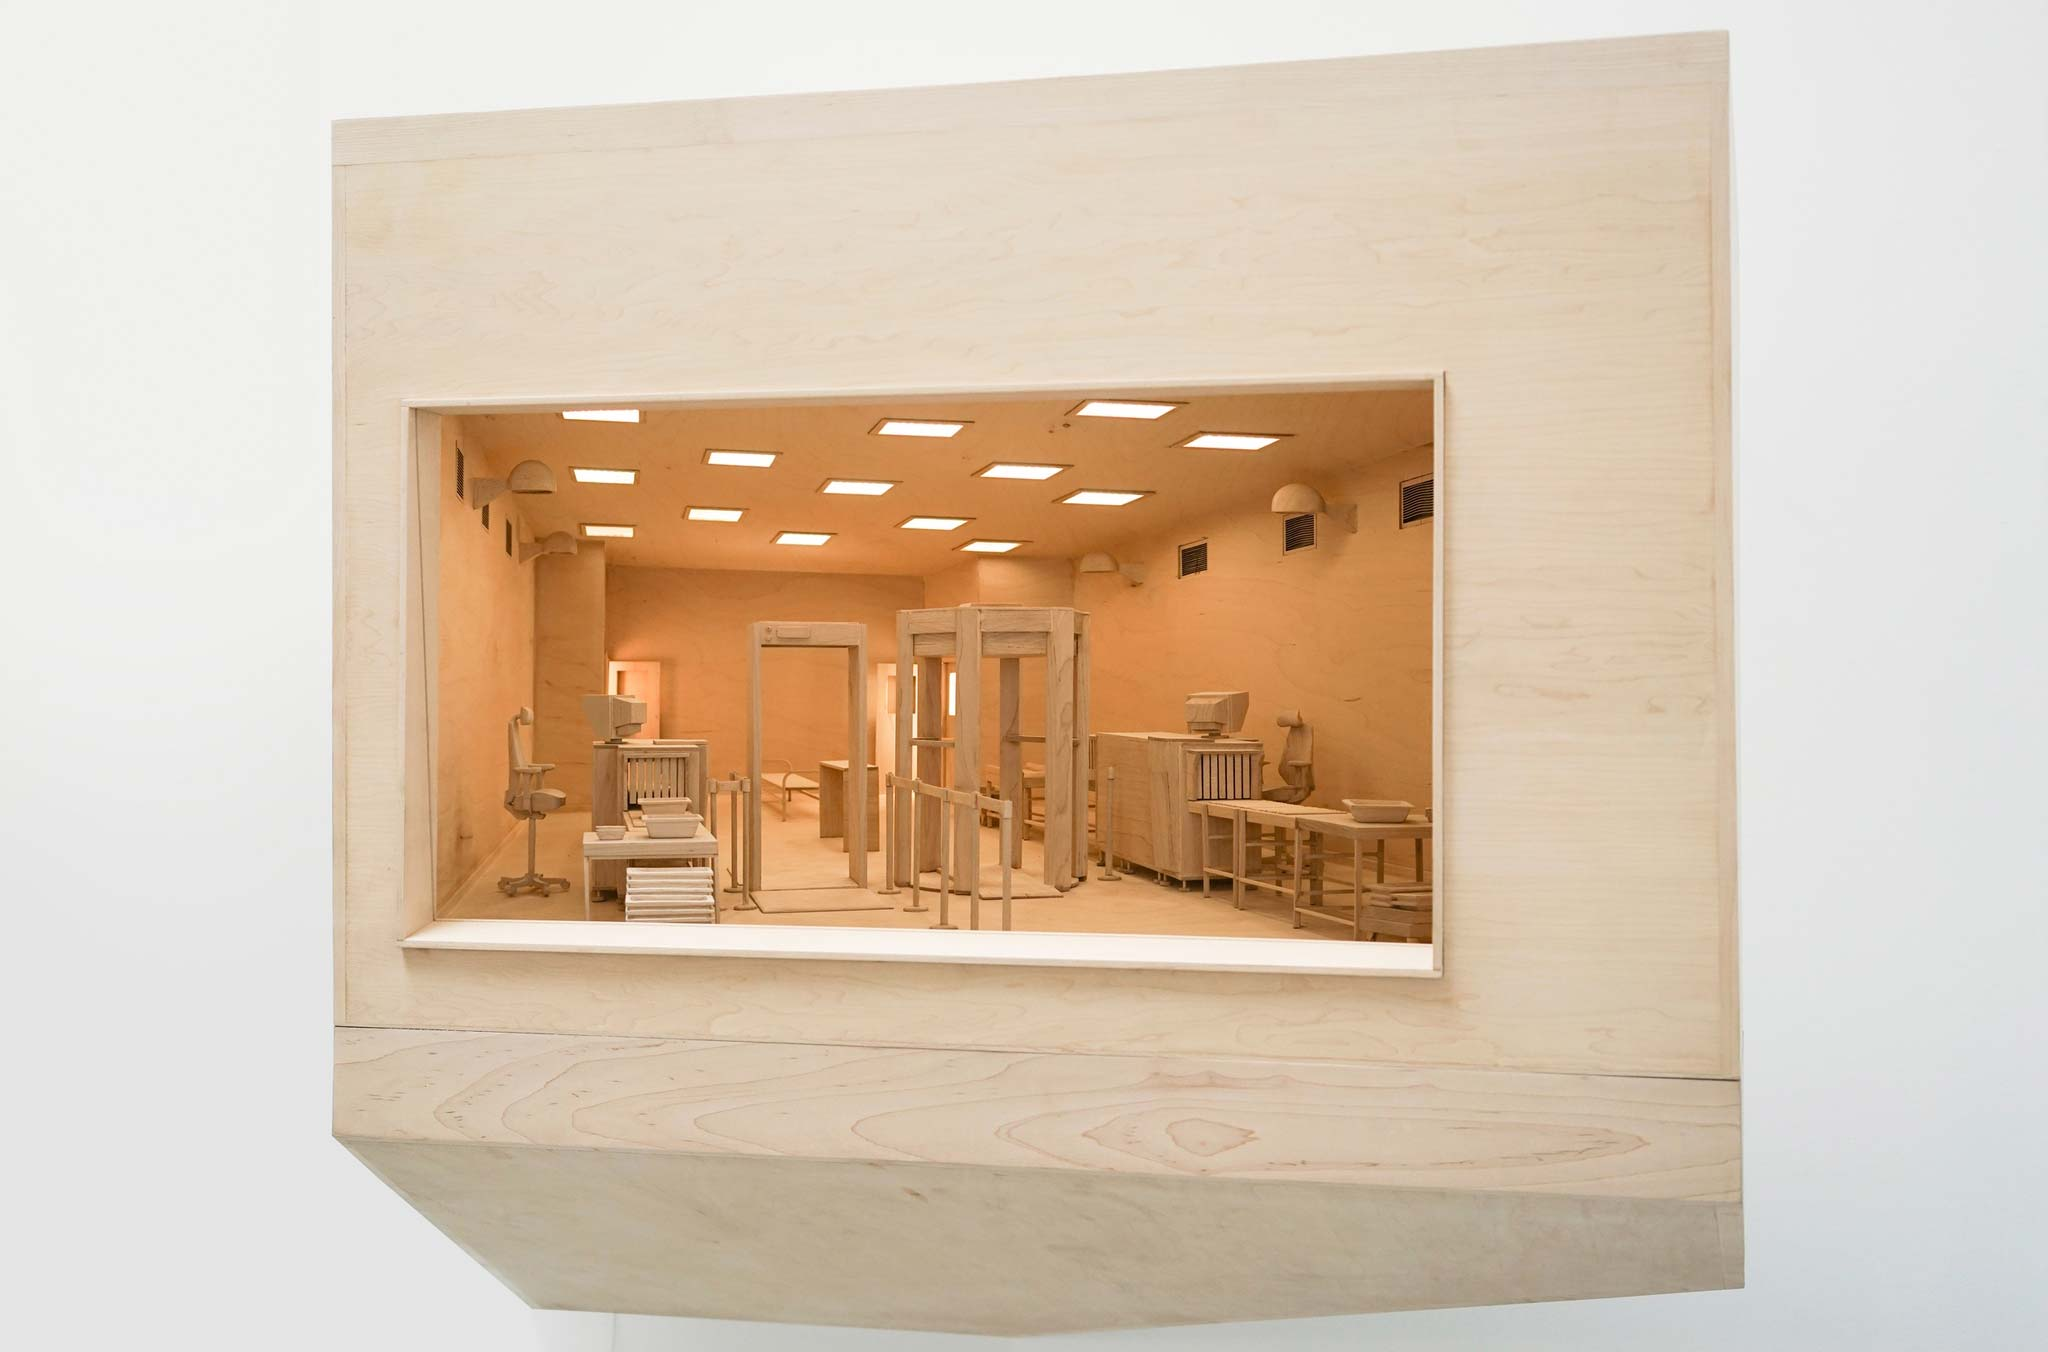 "Maquette for Checkpoint by Roxy Paine. 2013, maple, birch, fluorescent lamps, glass, 42"" x 52"" x 32"". Image courtesy of Paul Kasmin Gallery."